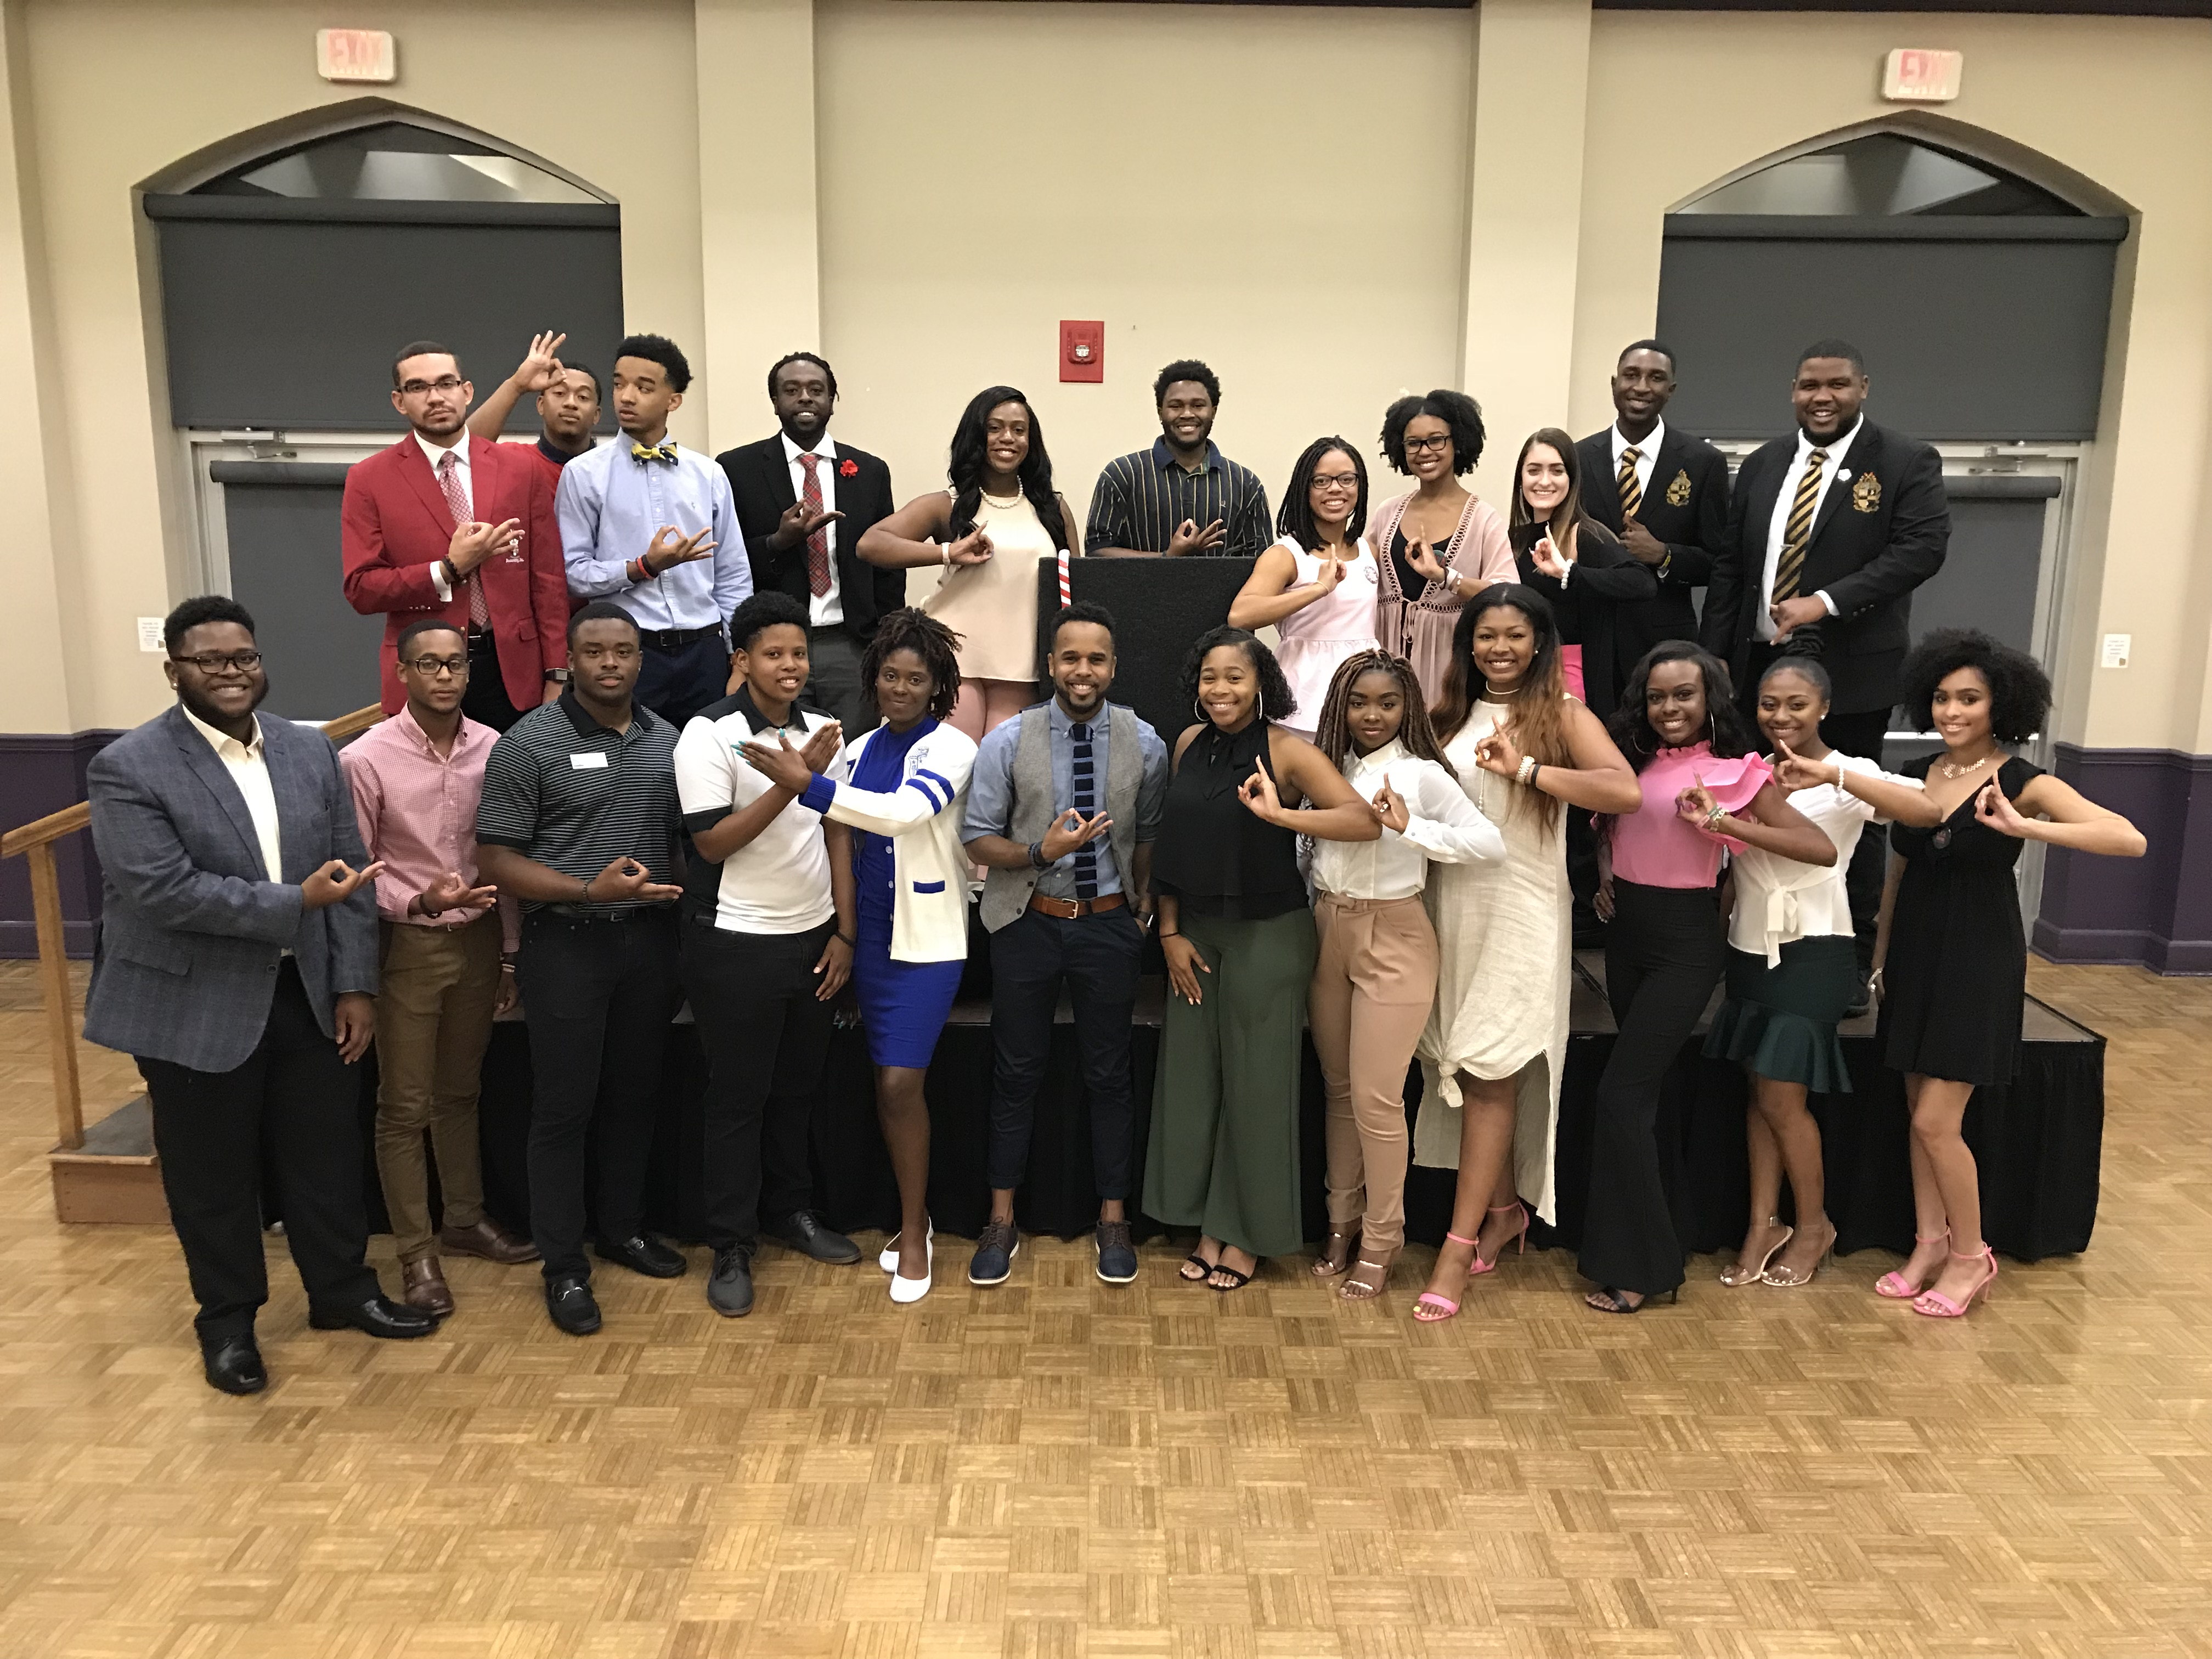 National Pan-Hellenic Council (NPHC)